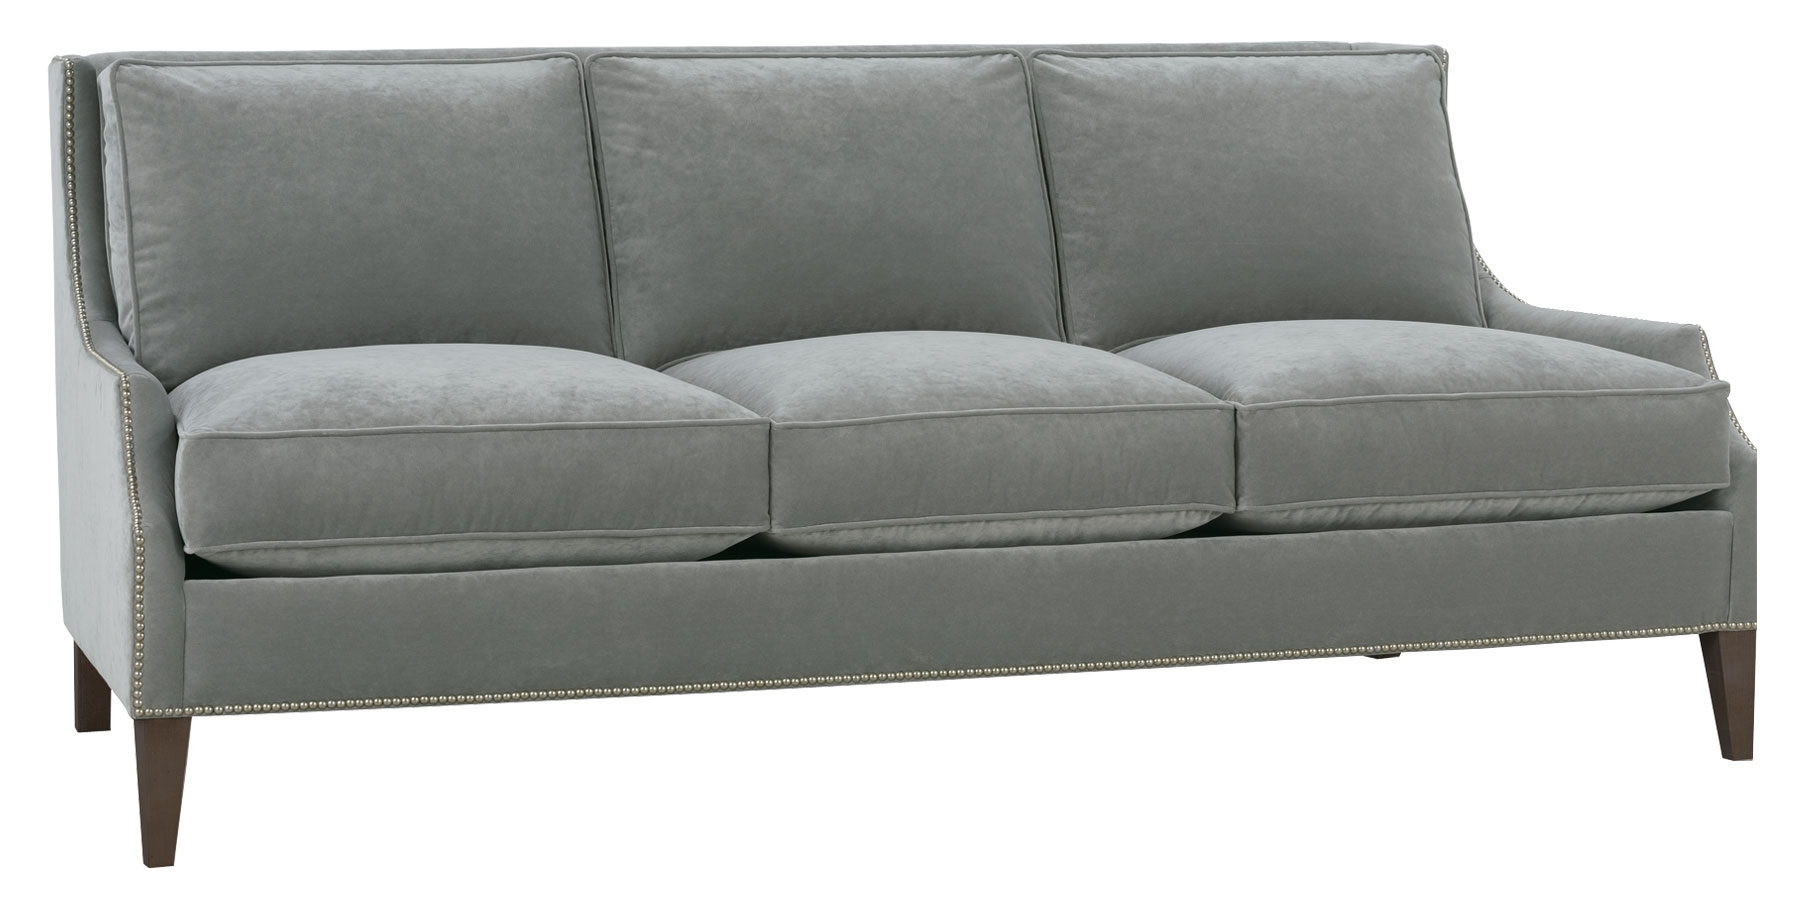 Awesome Apartment Size Sofa 36 About Remodel Office Sofa Ideas With Within Apartment Sofas (View 8 of 10)